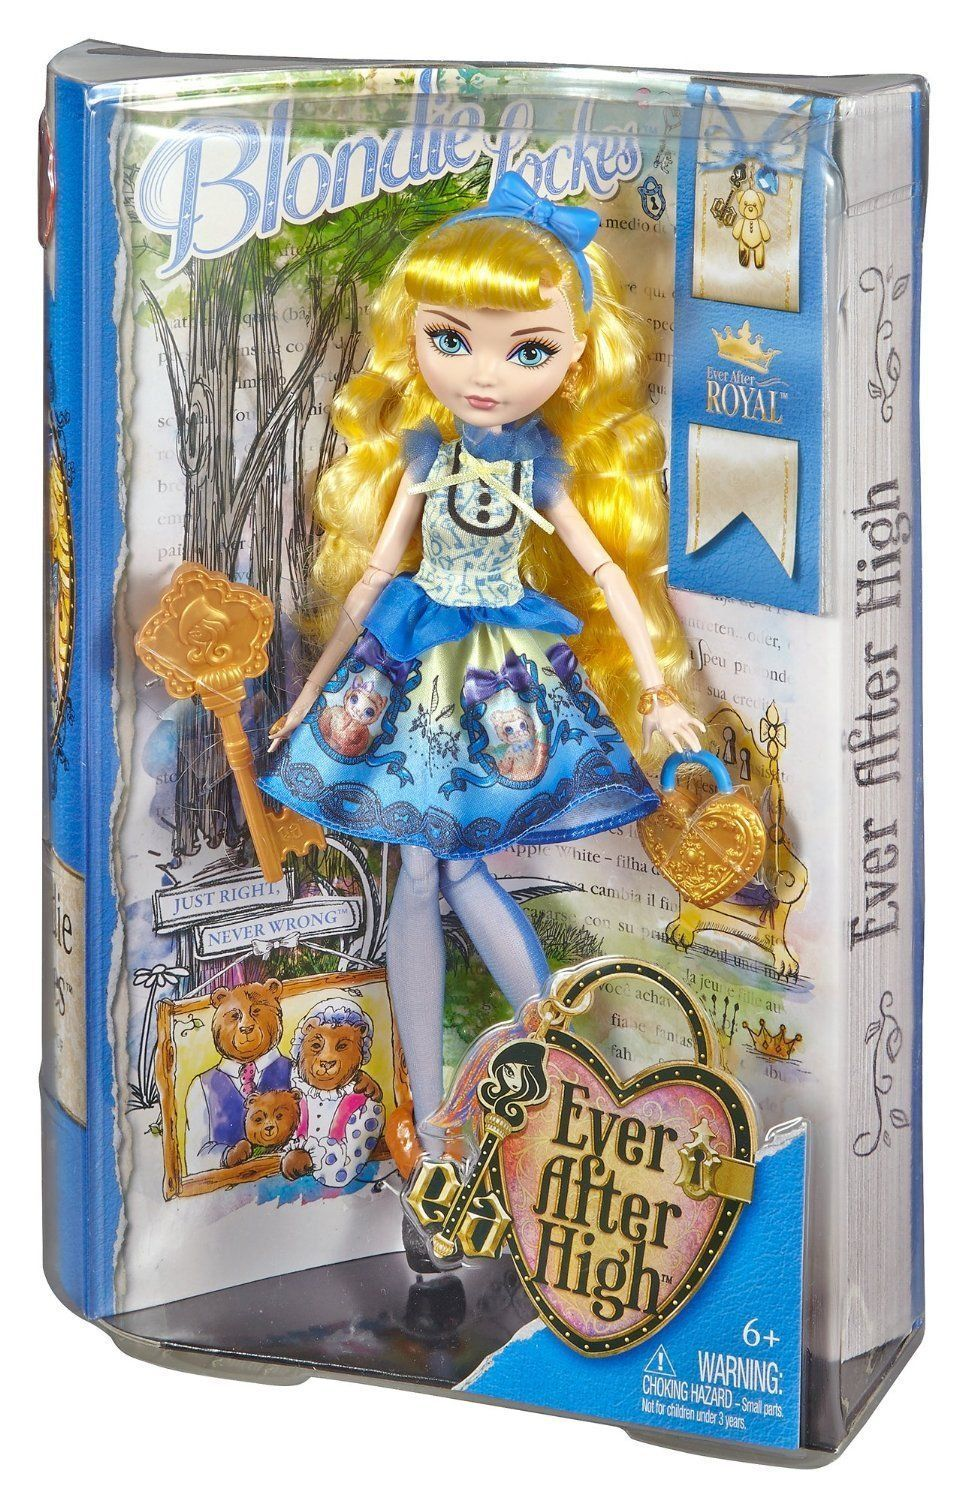 Image 1 of Ever After High Blondie Lockes Fashion Doll, 6+, Mattel